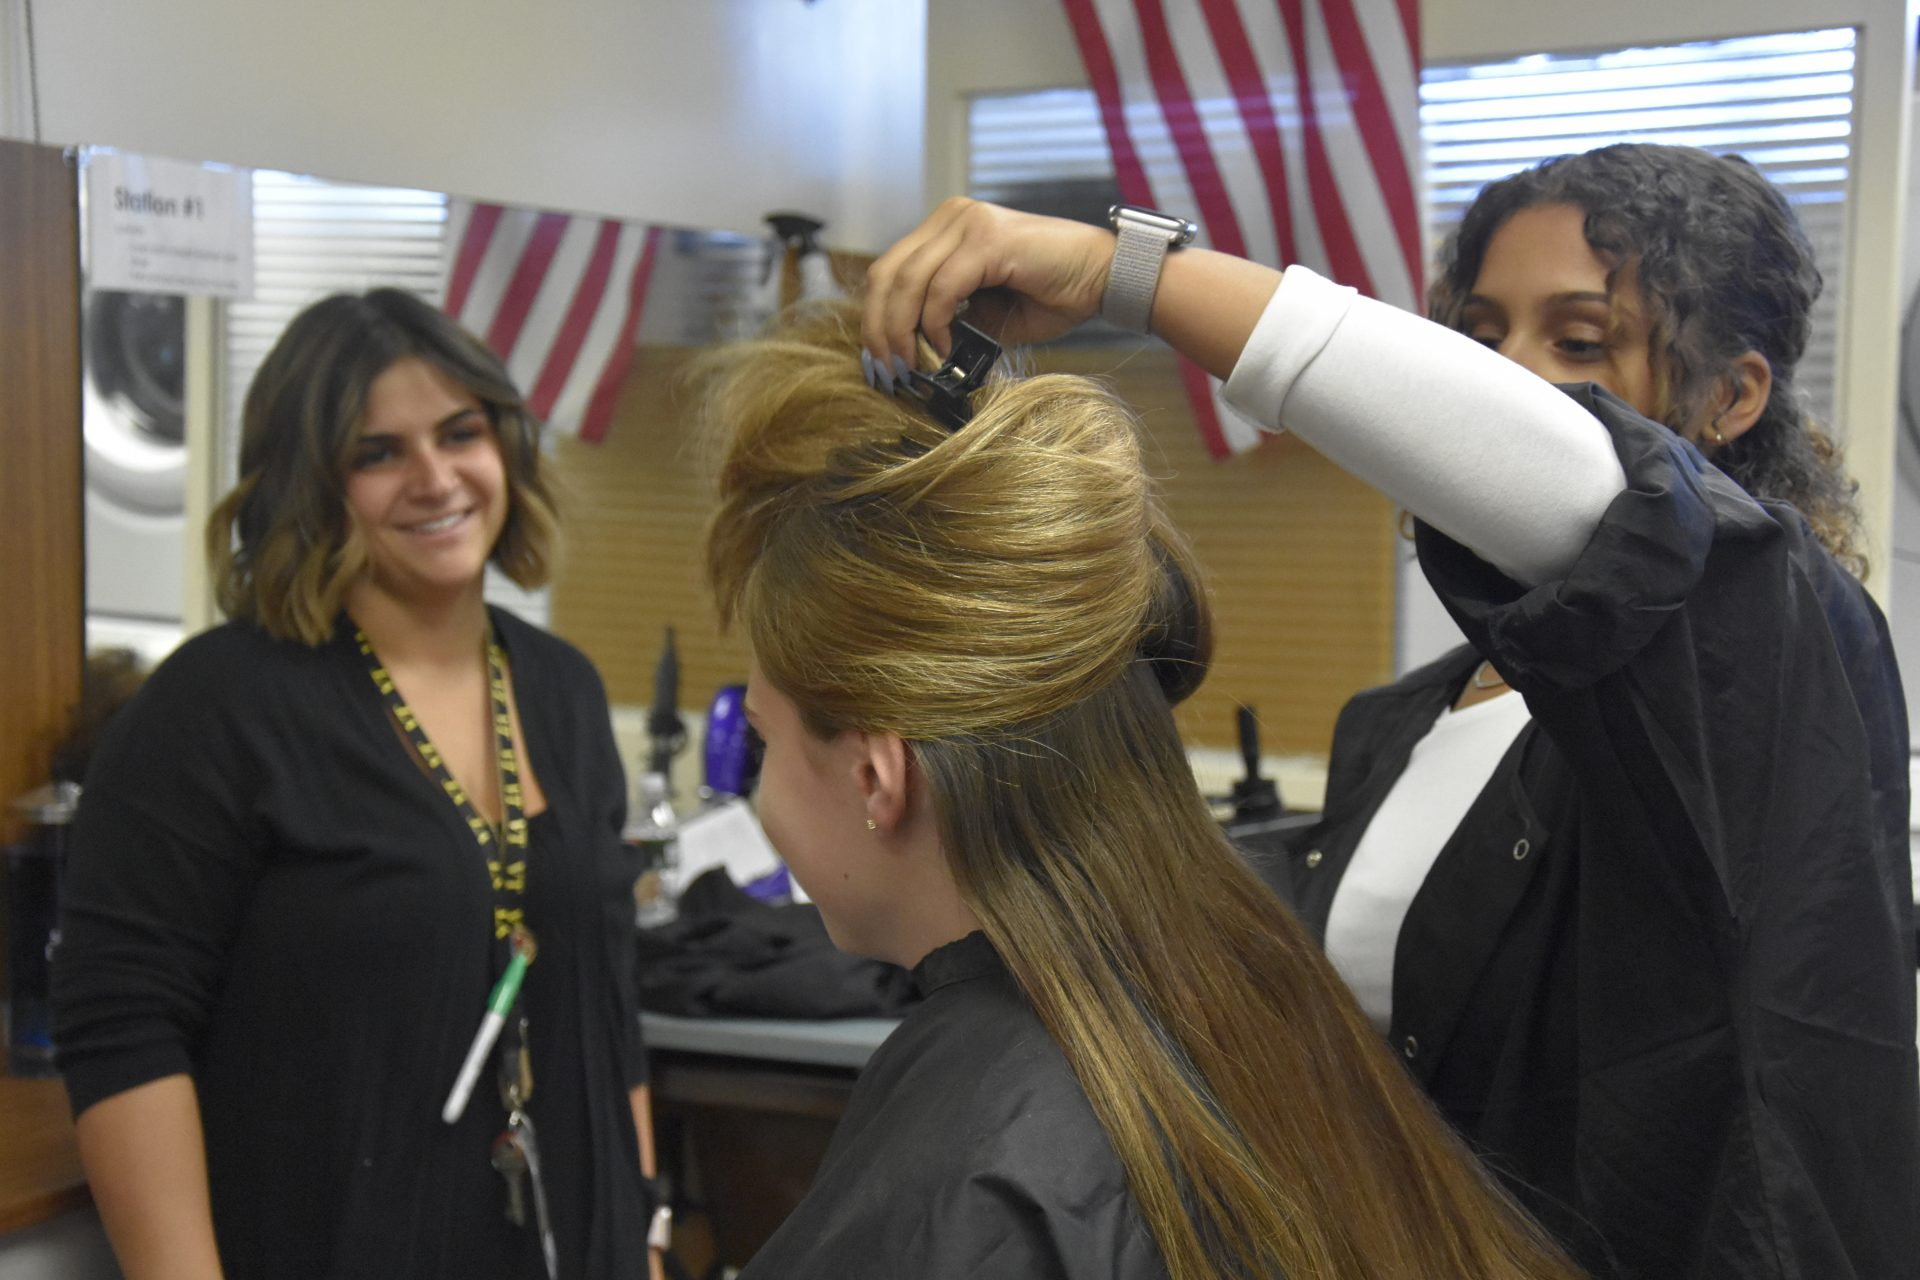 Cosmo students doing hair while teacher observes